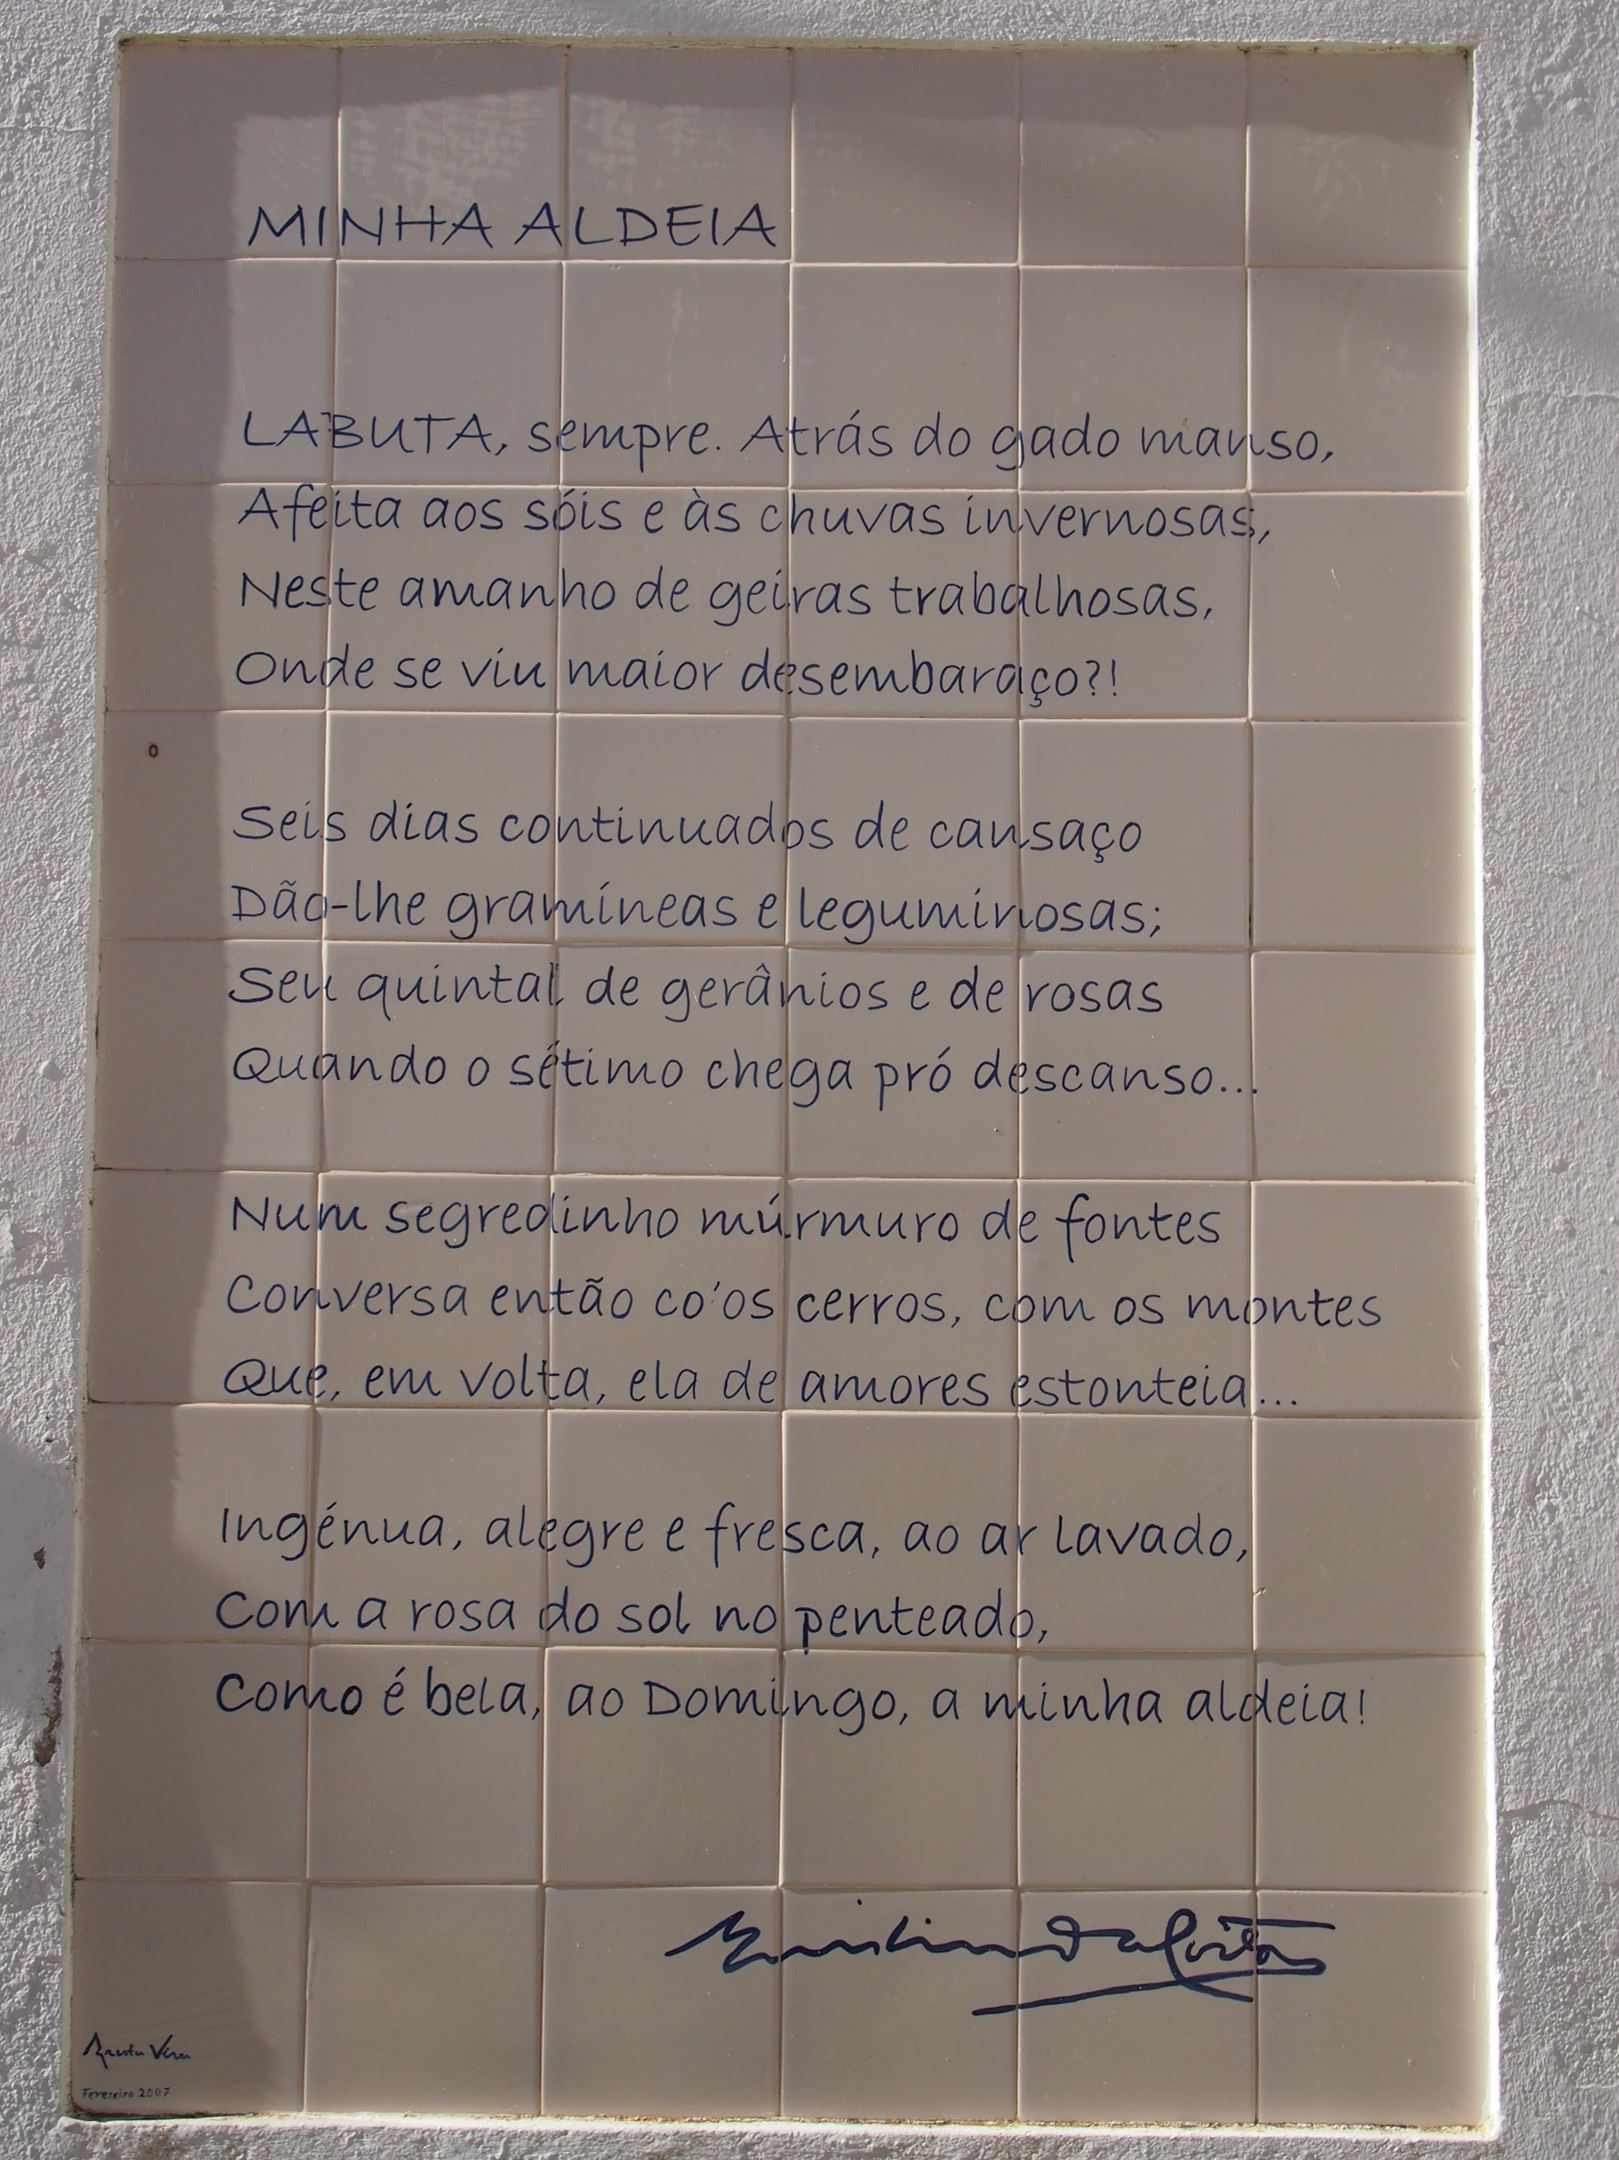 Estoi poetry. As you walk around Estoi, you will find poems randomly placed. Minha Aldeia translates as My Village.